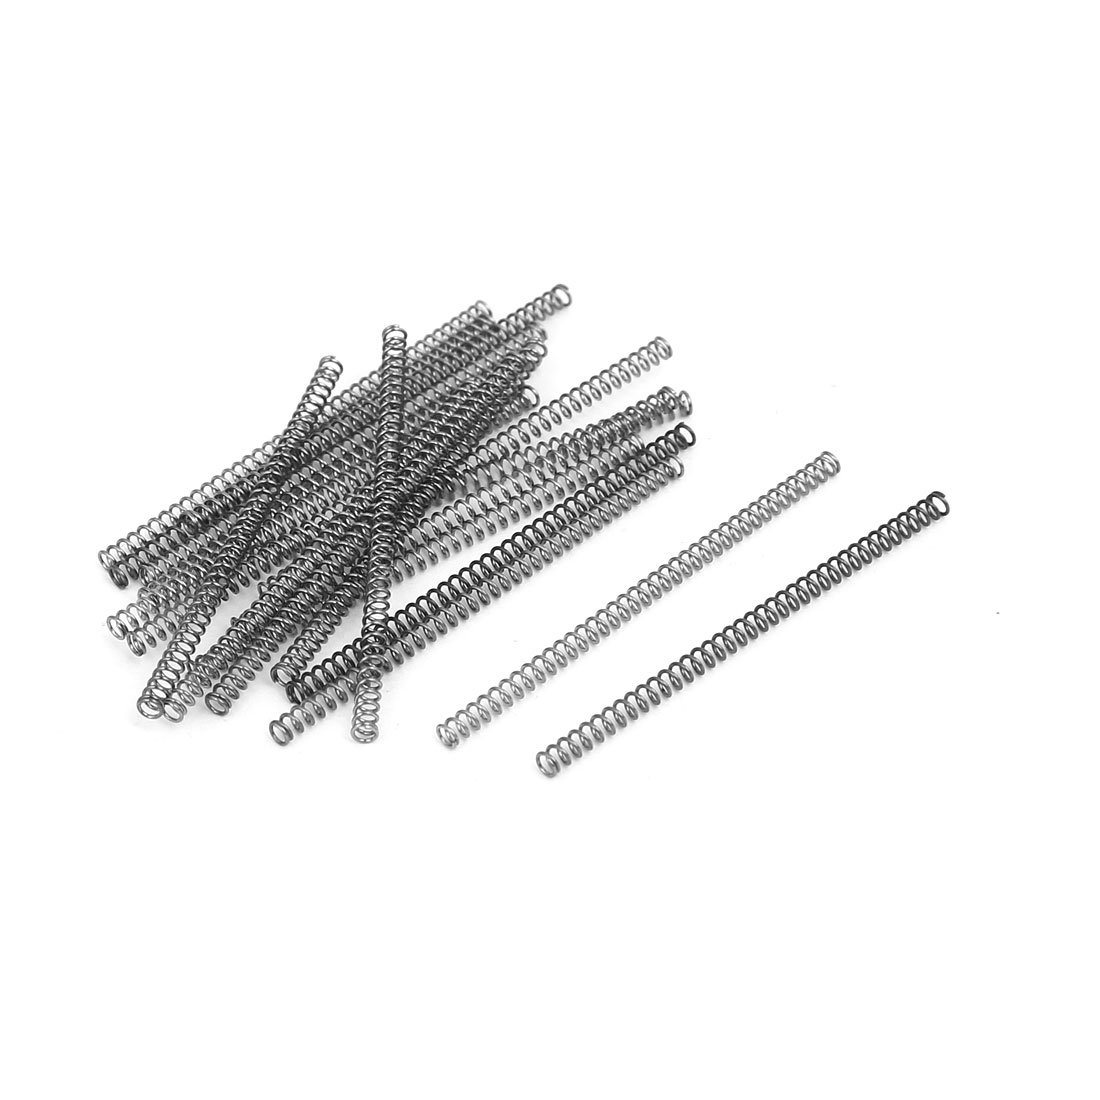 uxcell 4 years warranty Compression Spring 304 Stainless OD 0.3mm Steel Cheap super special price Wire 2mm